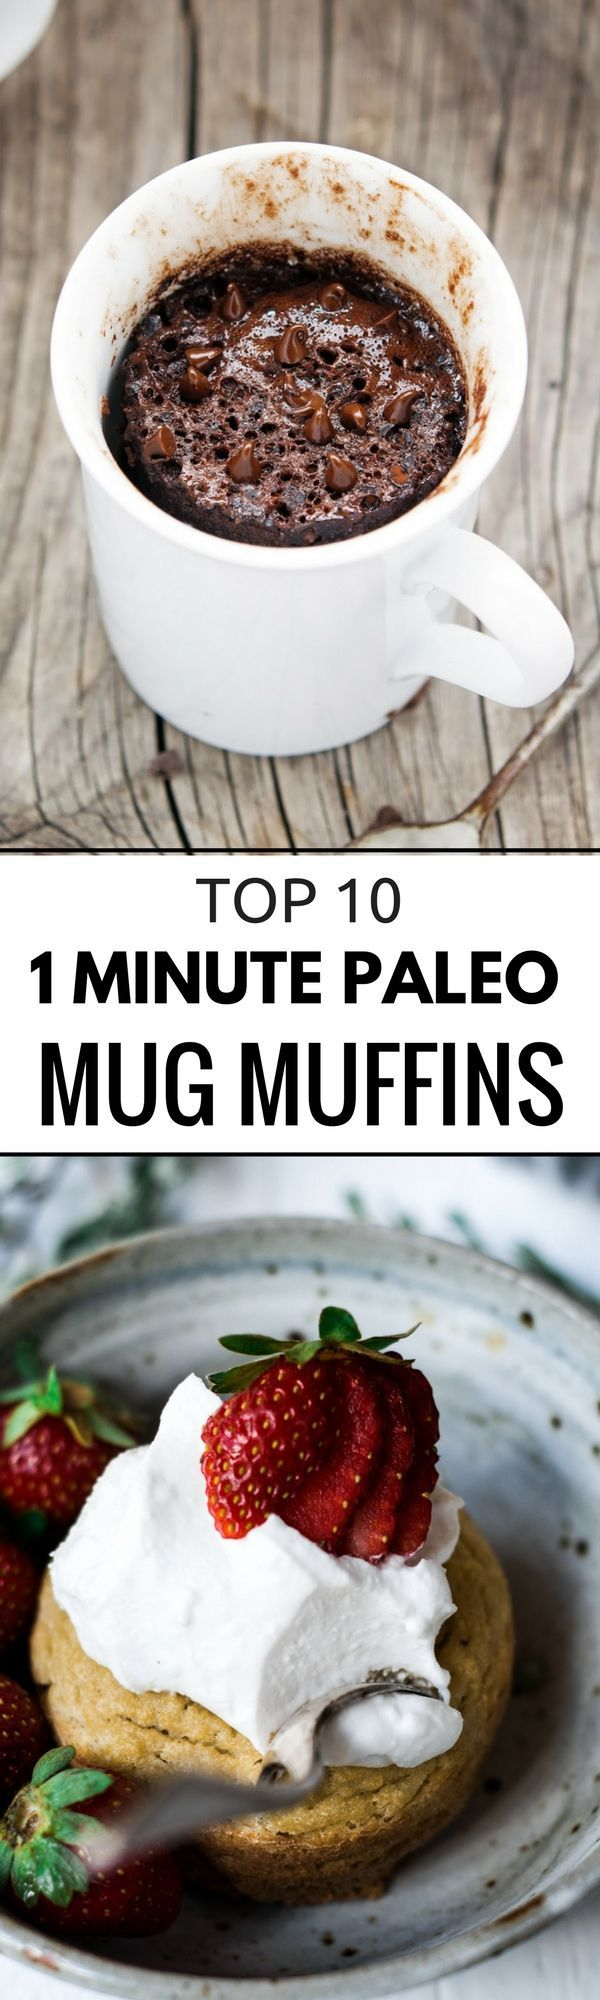 Top 10 Paleo Mug Muffin Recipe Made in 1 minute! Delicious recipe for 1 min…